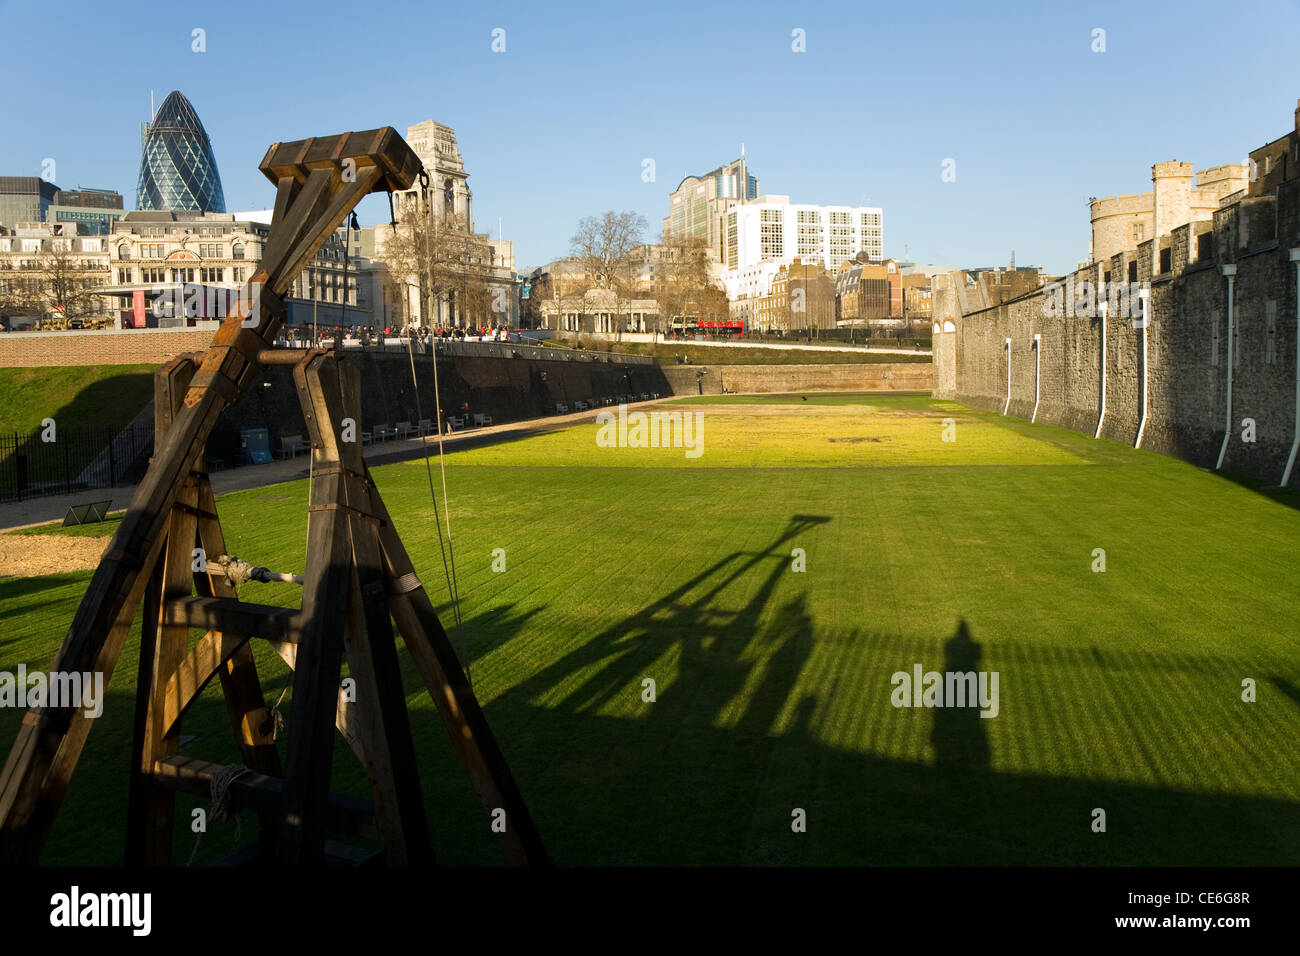 Remains of the moat at the Tower of London, in London. UK. - Stock Image